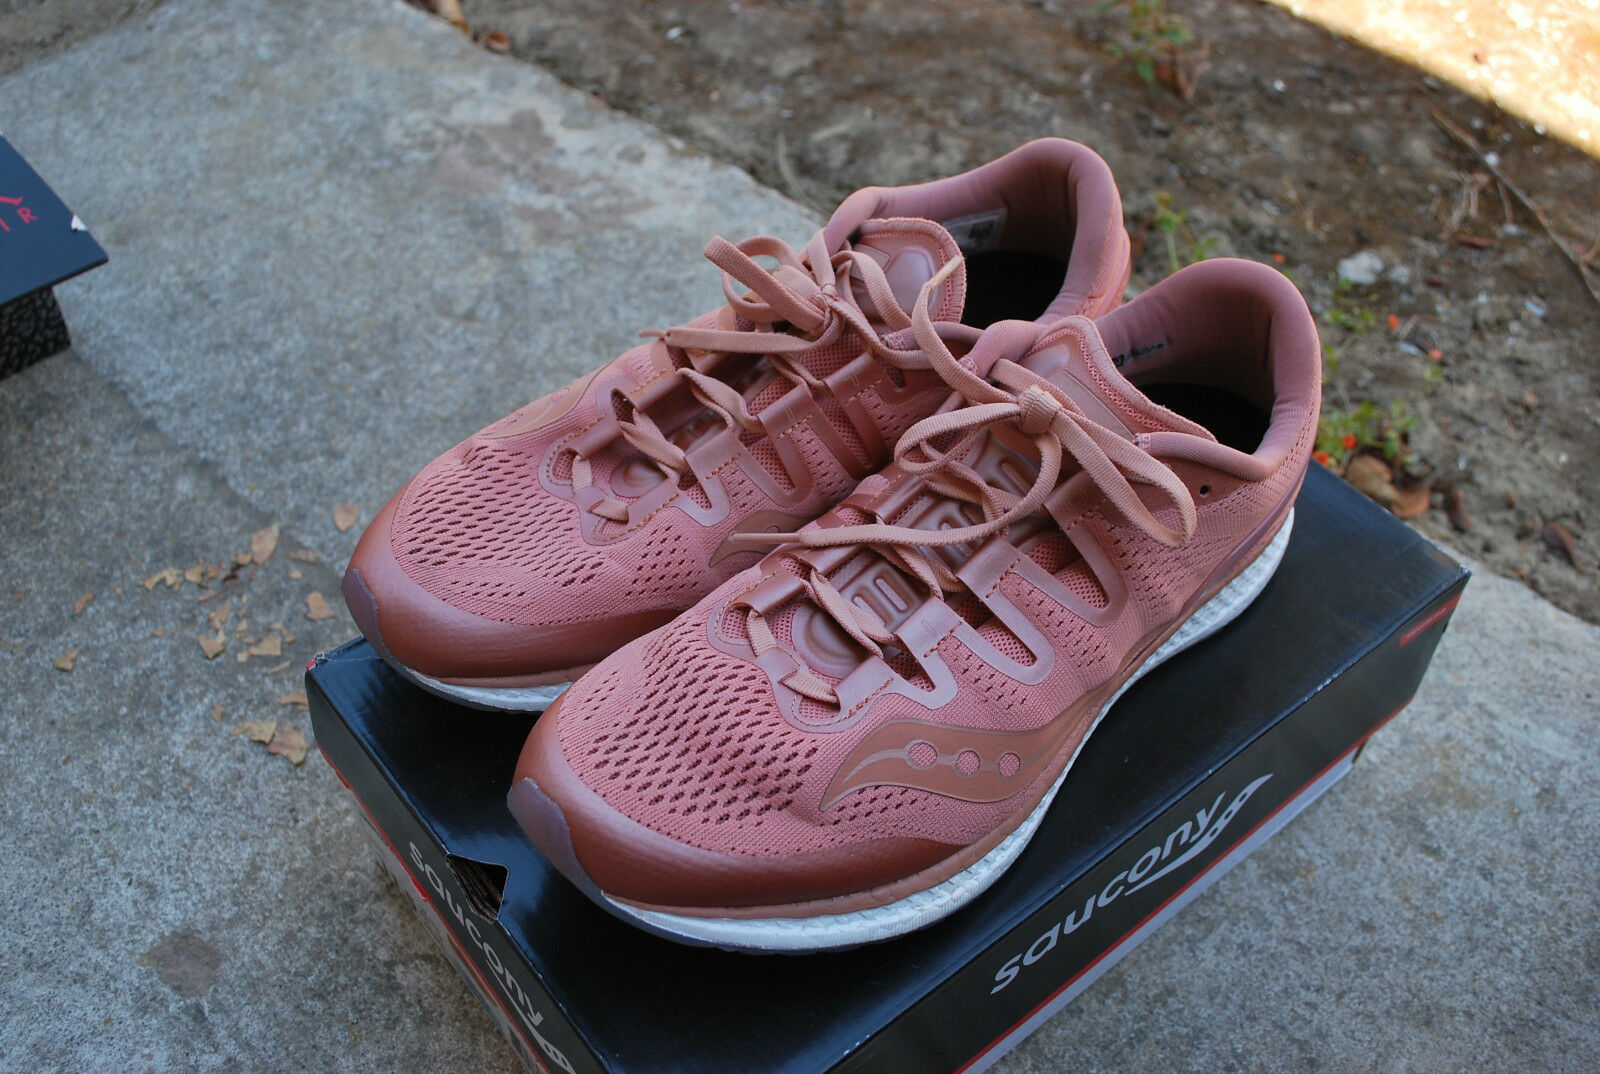 USED SAUCONY FREEDOM ISO SALMON - S20355-52 S20355-52 S20355-52 SIZE 11.5 b23a96